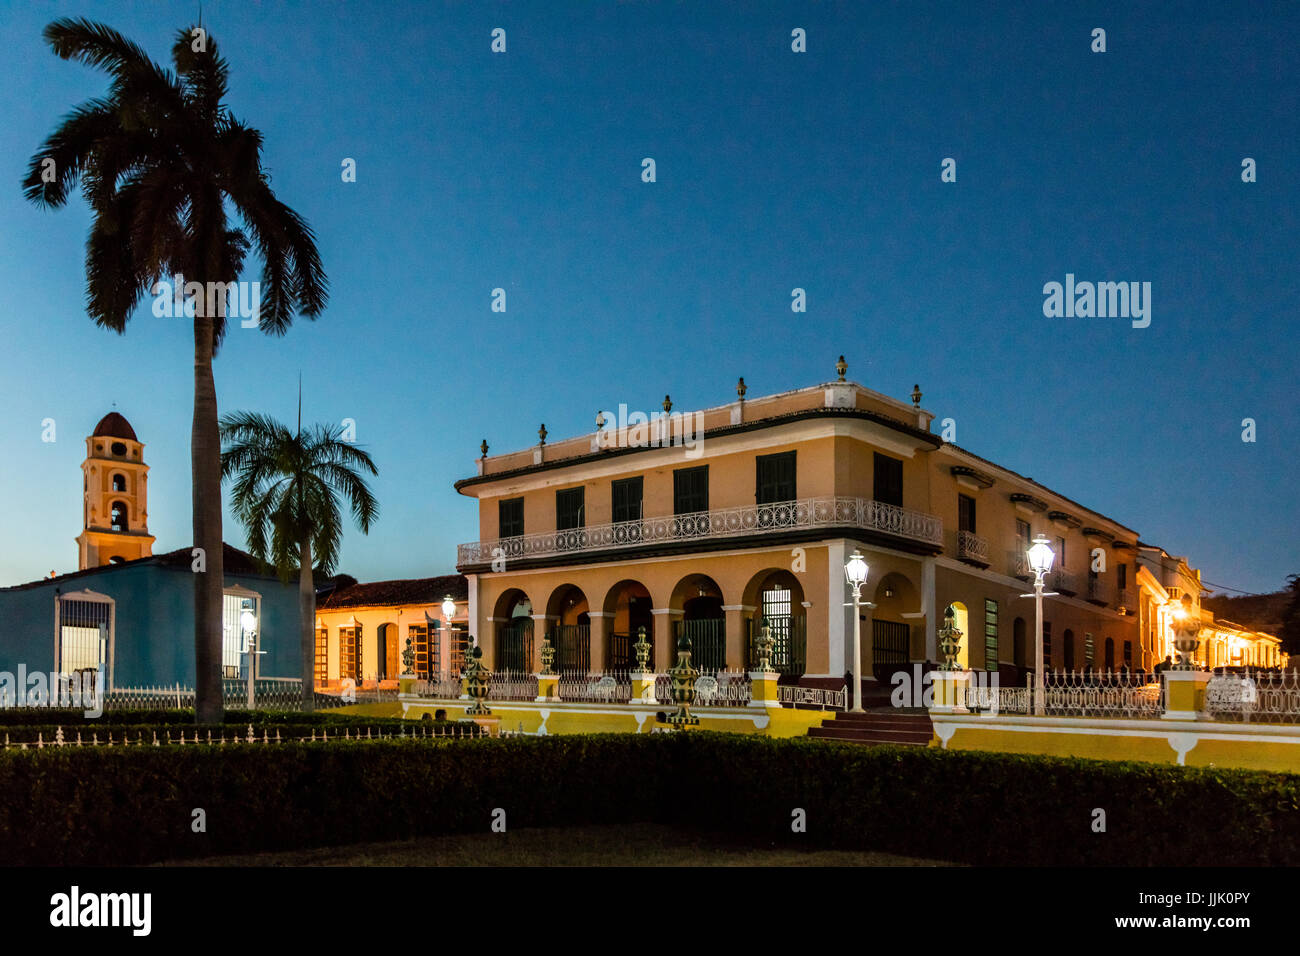 The MUSEO ROMANTICO is housed in the former PALACIO BRUNET on the PLAZA MAYOR - TRINIDAD, CUBA - Stock Image